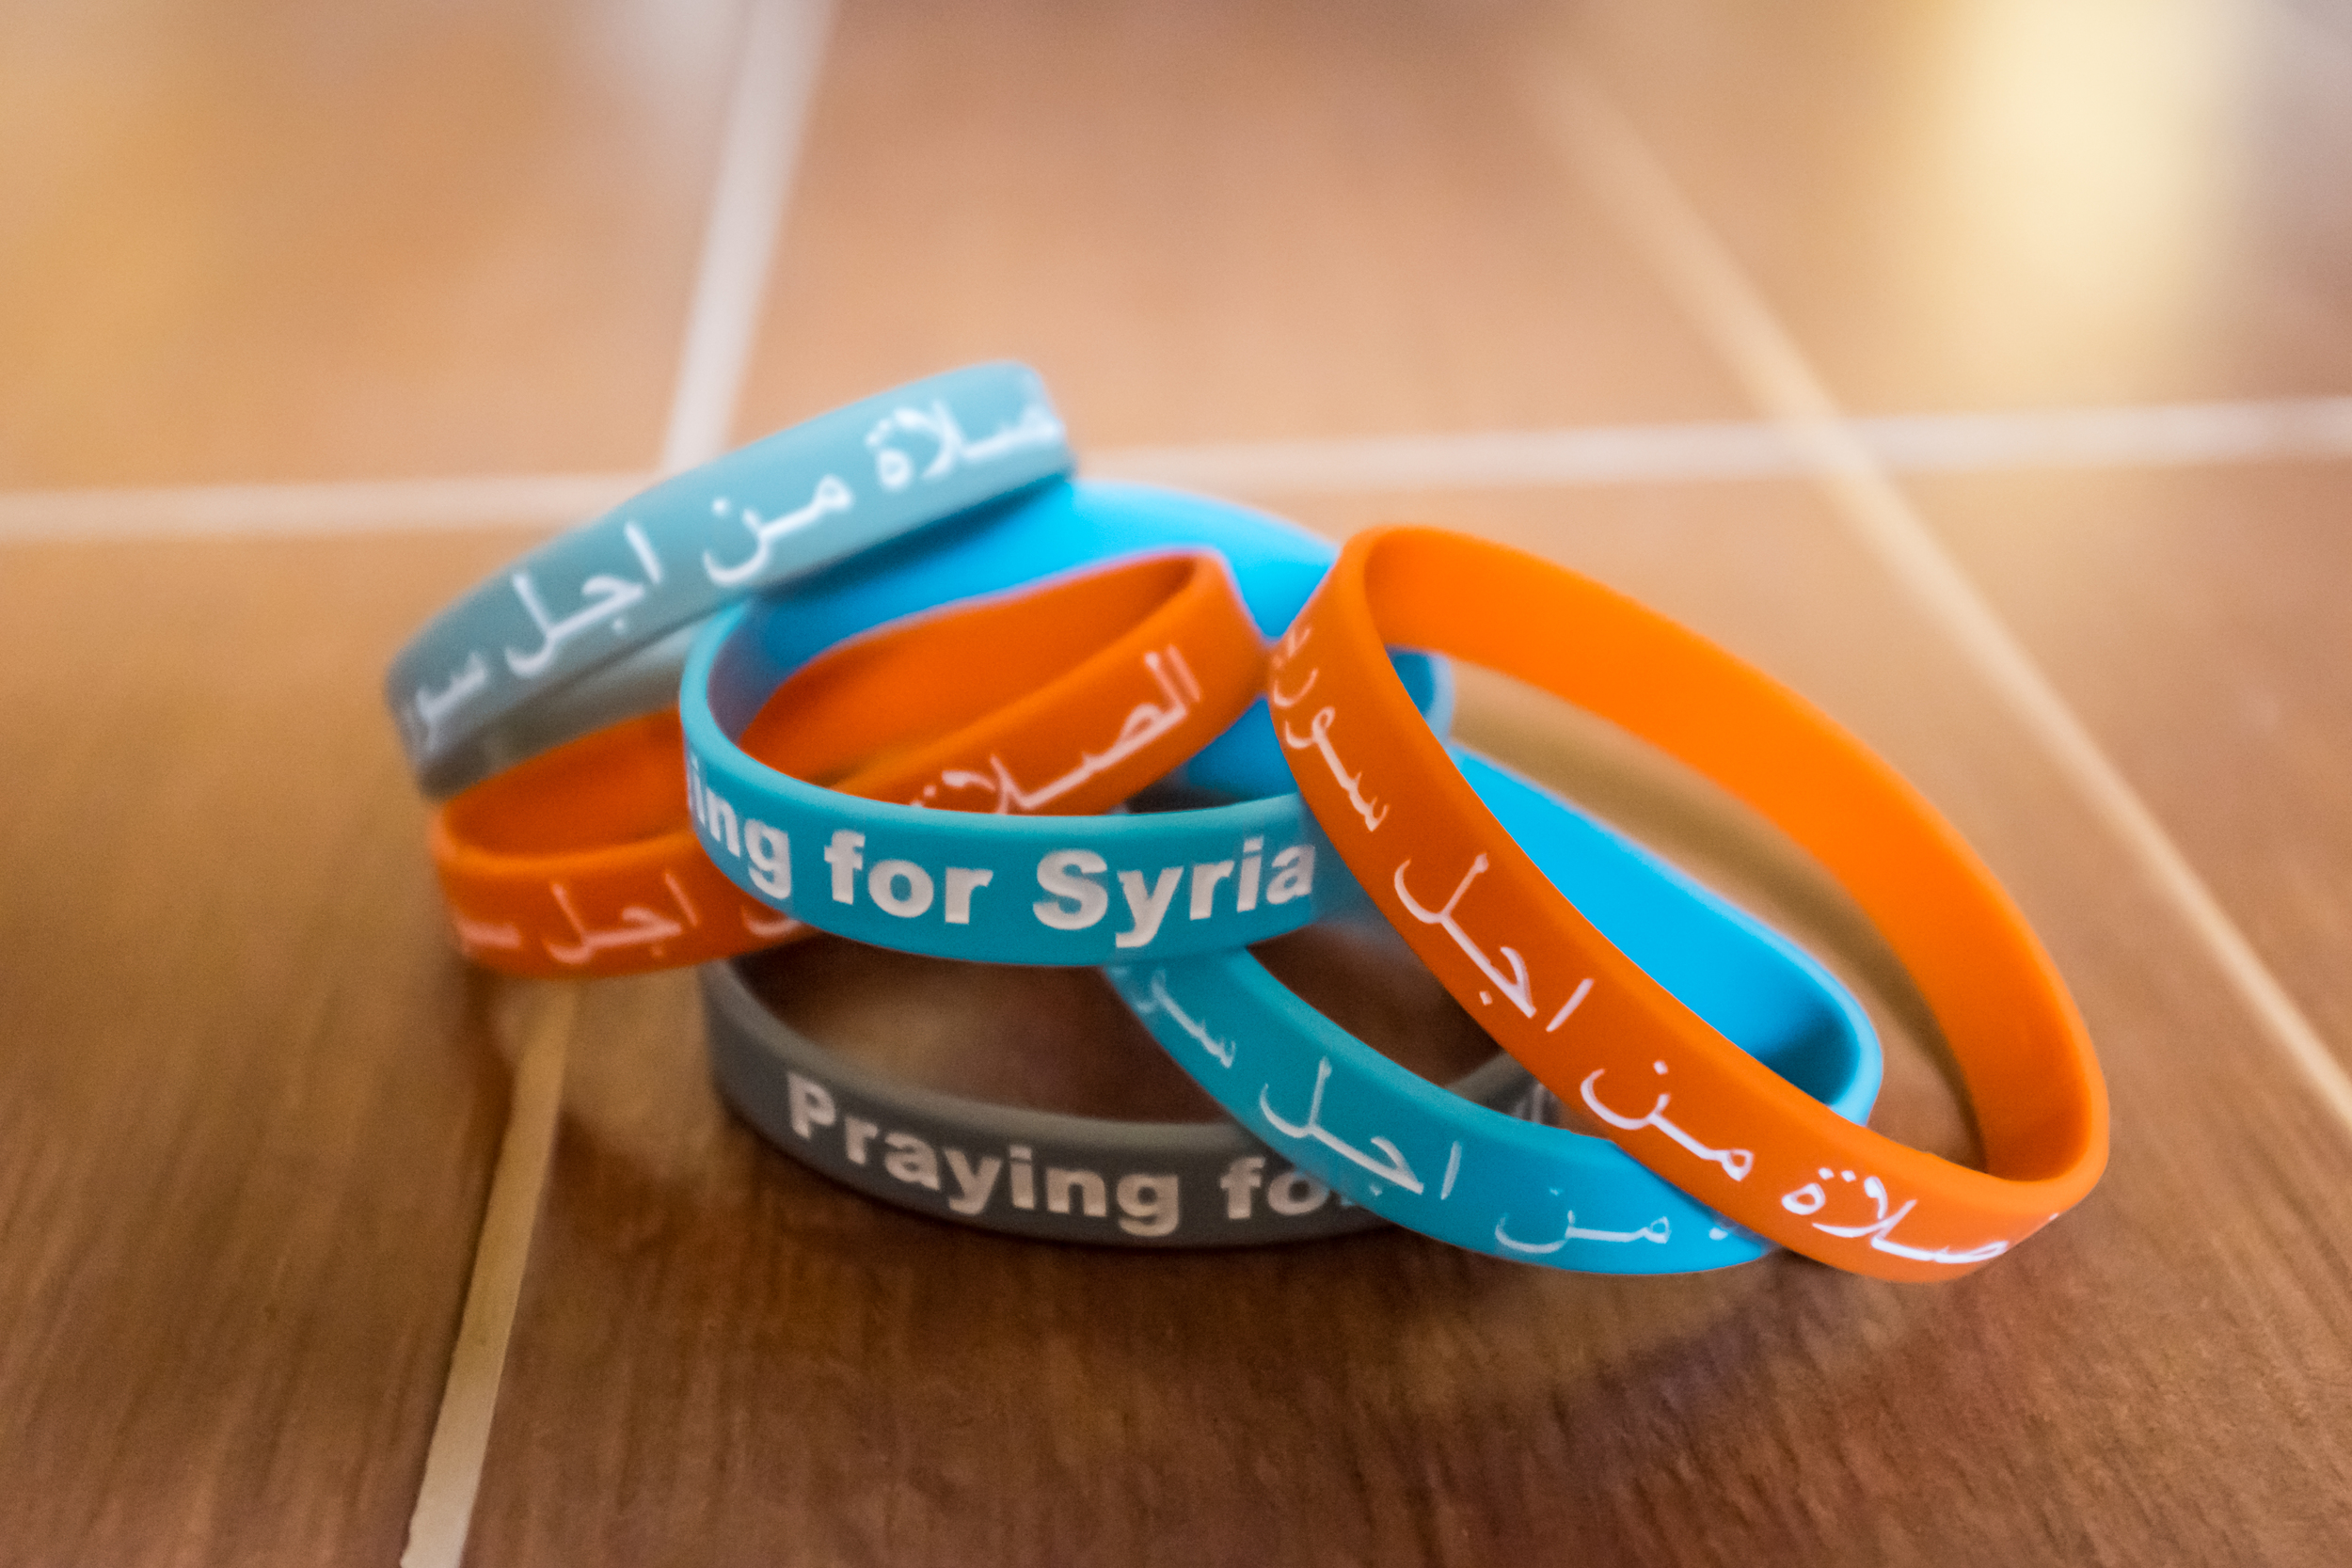 Praying for Syria